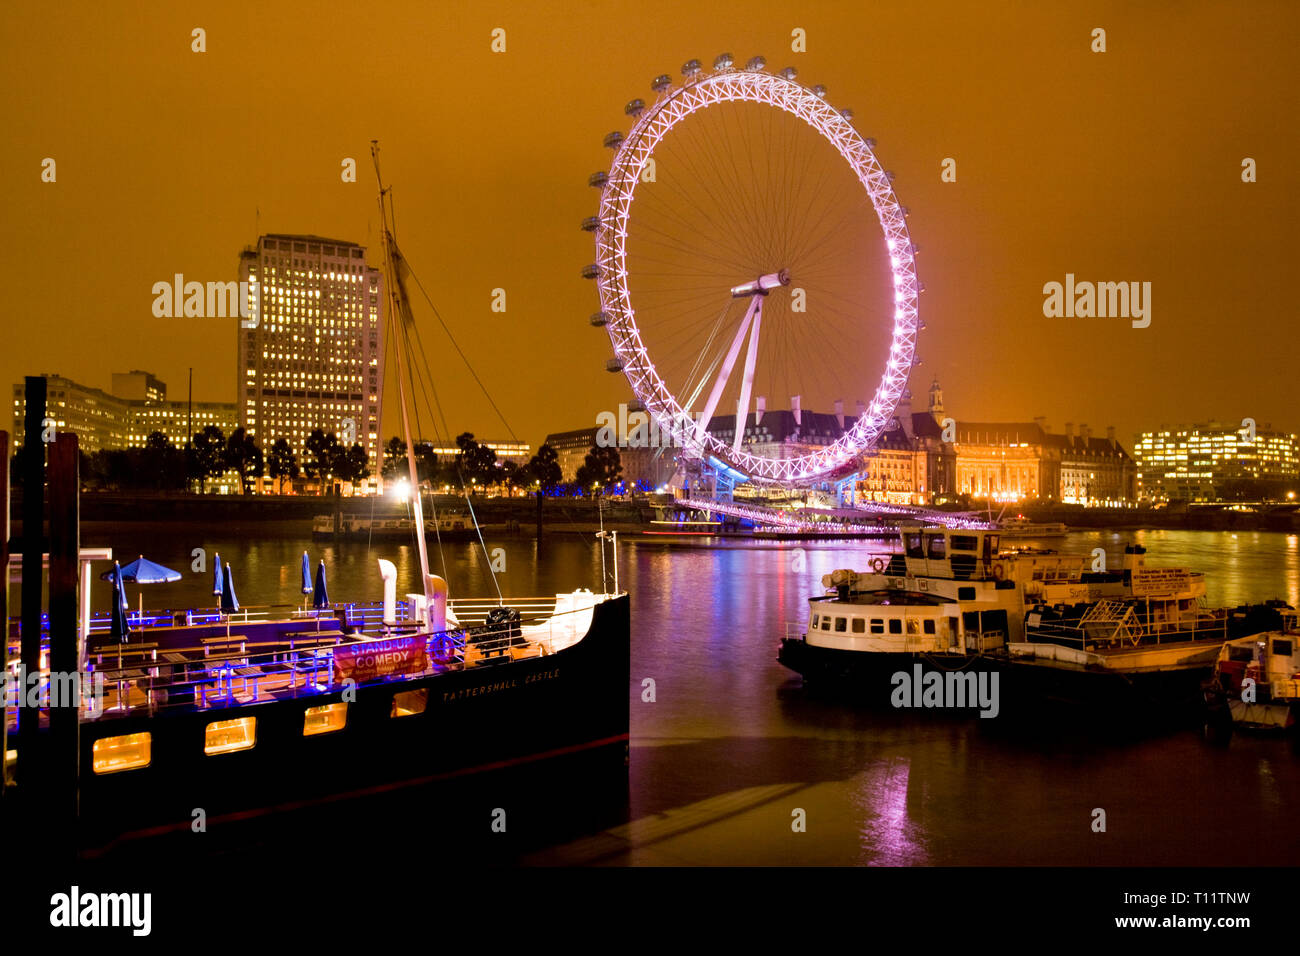 Great Britain, England, London.  The London Eye on the bank of the River Thames. The orange color is an effect of light pollution. - Stock Image